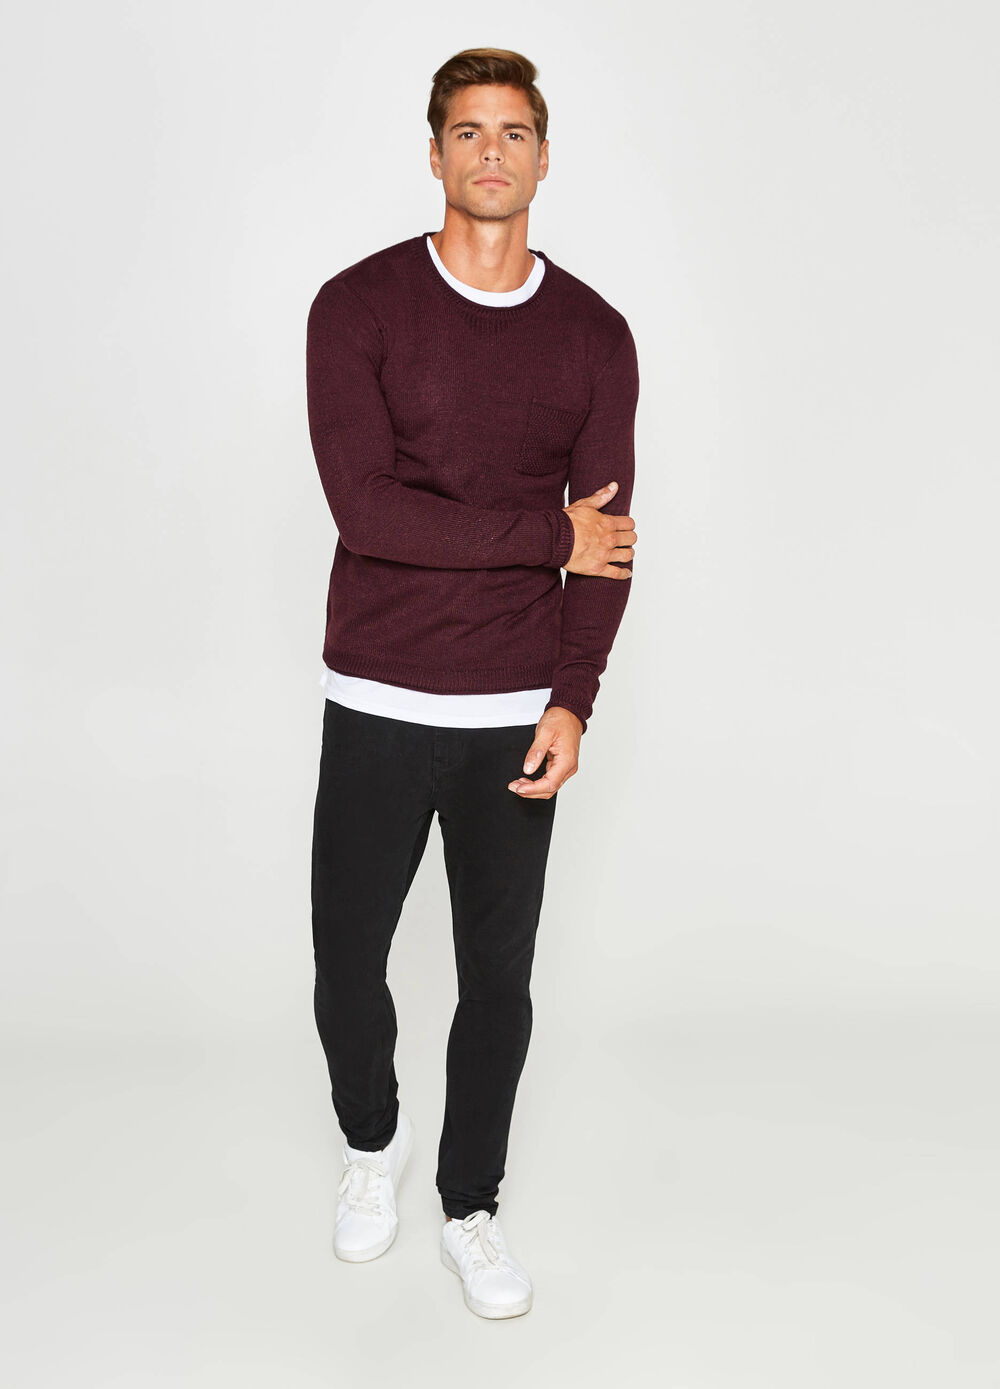 Raw-cut pullover with small pocket